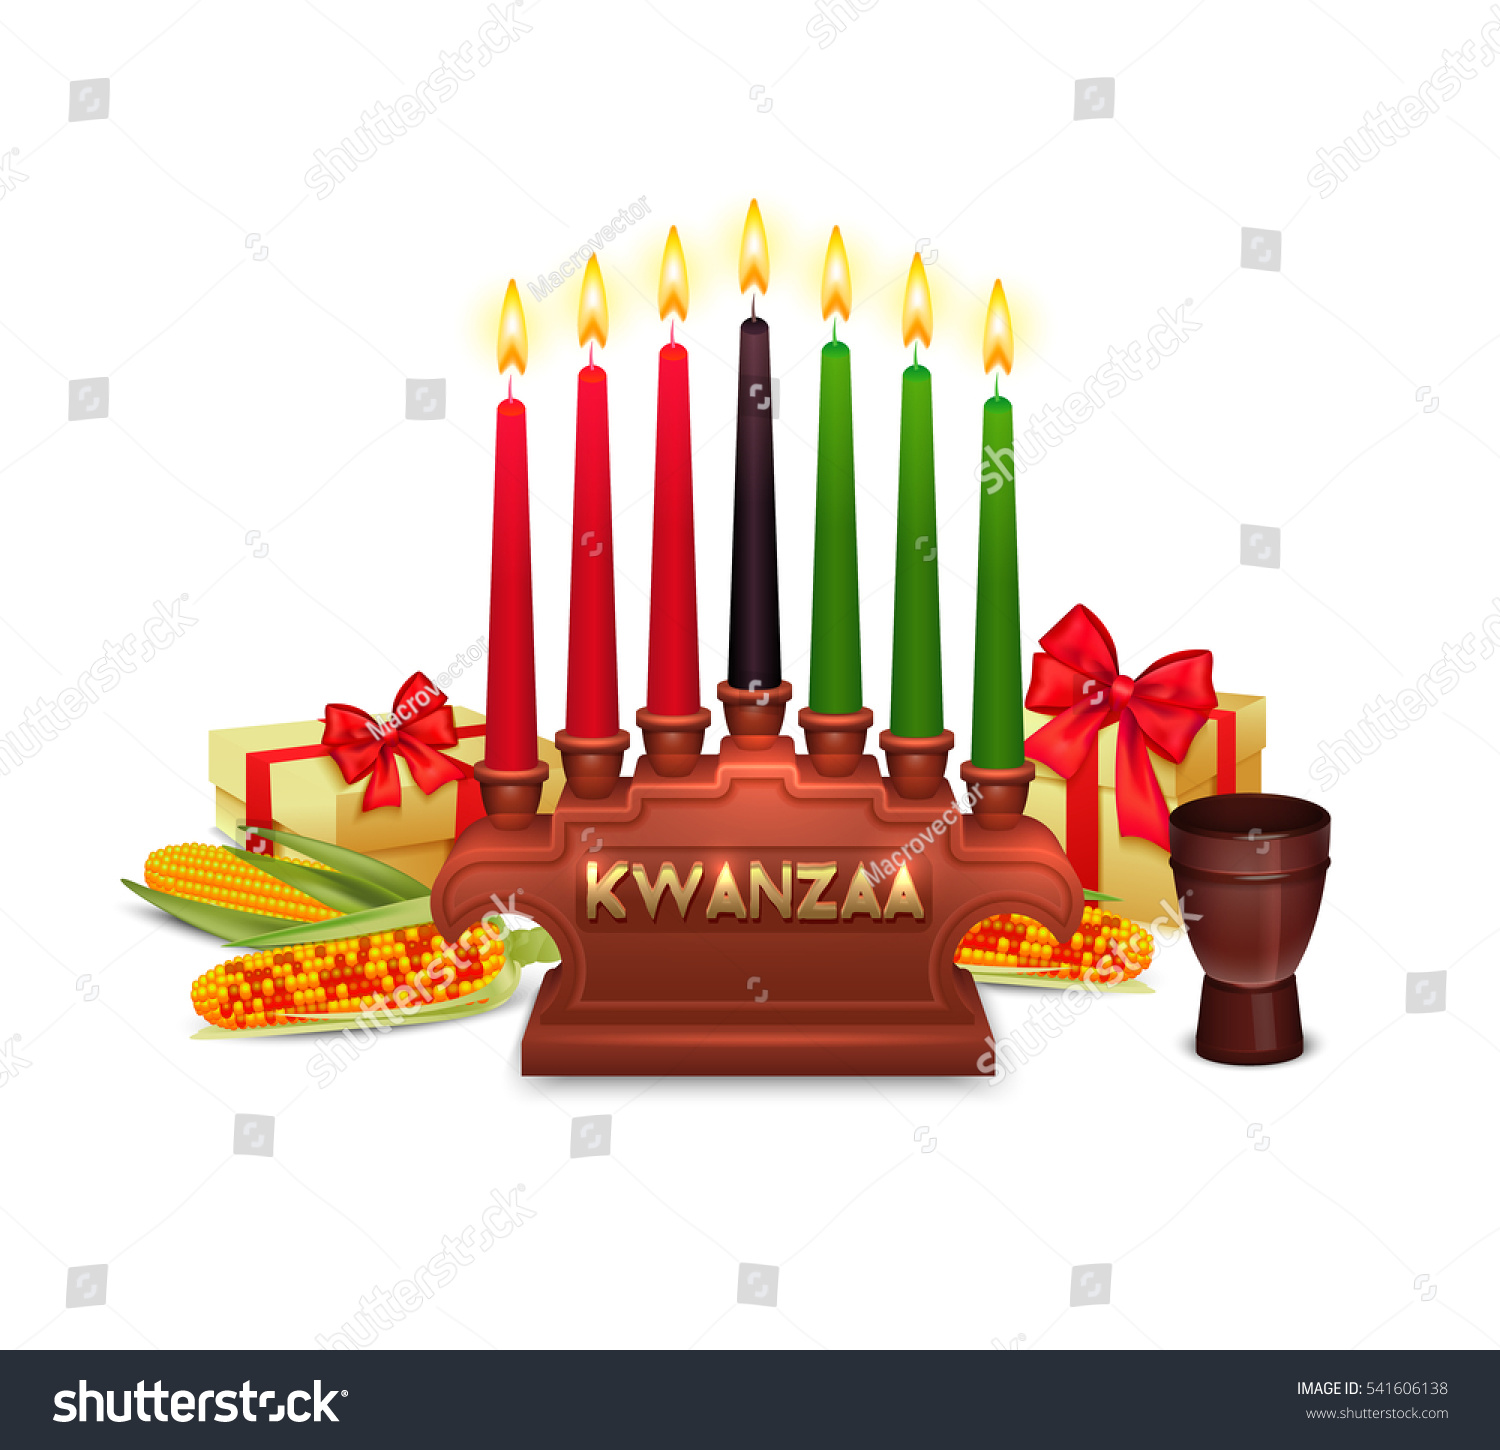 African Americans Kwanzaa Holiday Symbols Composition